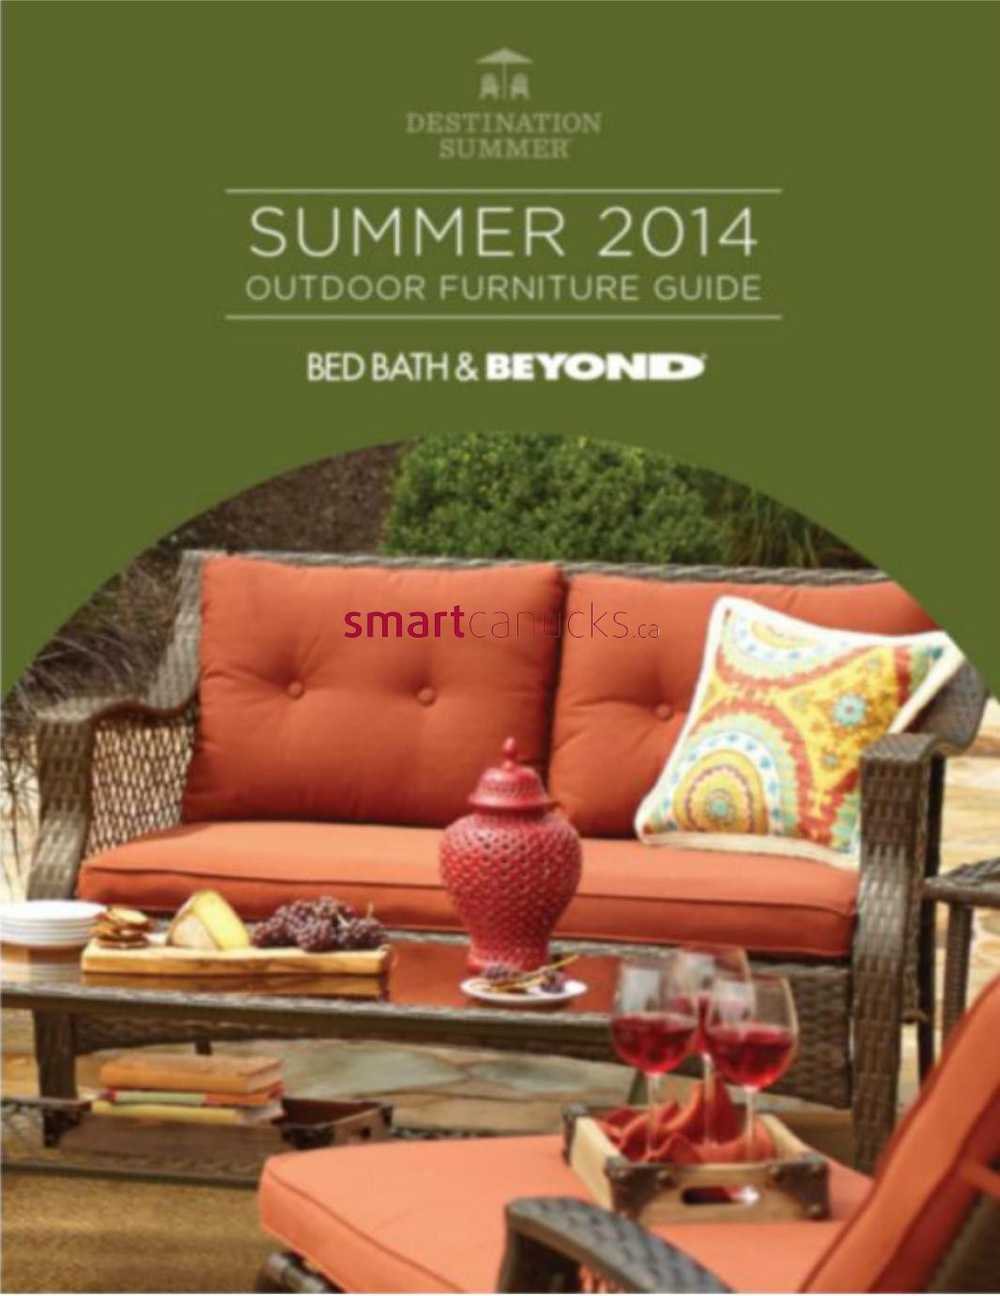 Bed Bath Amp Beyond 2014 Summer Outdoor Furniture Guide